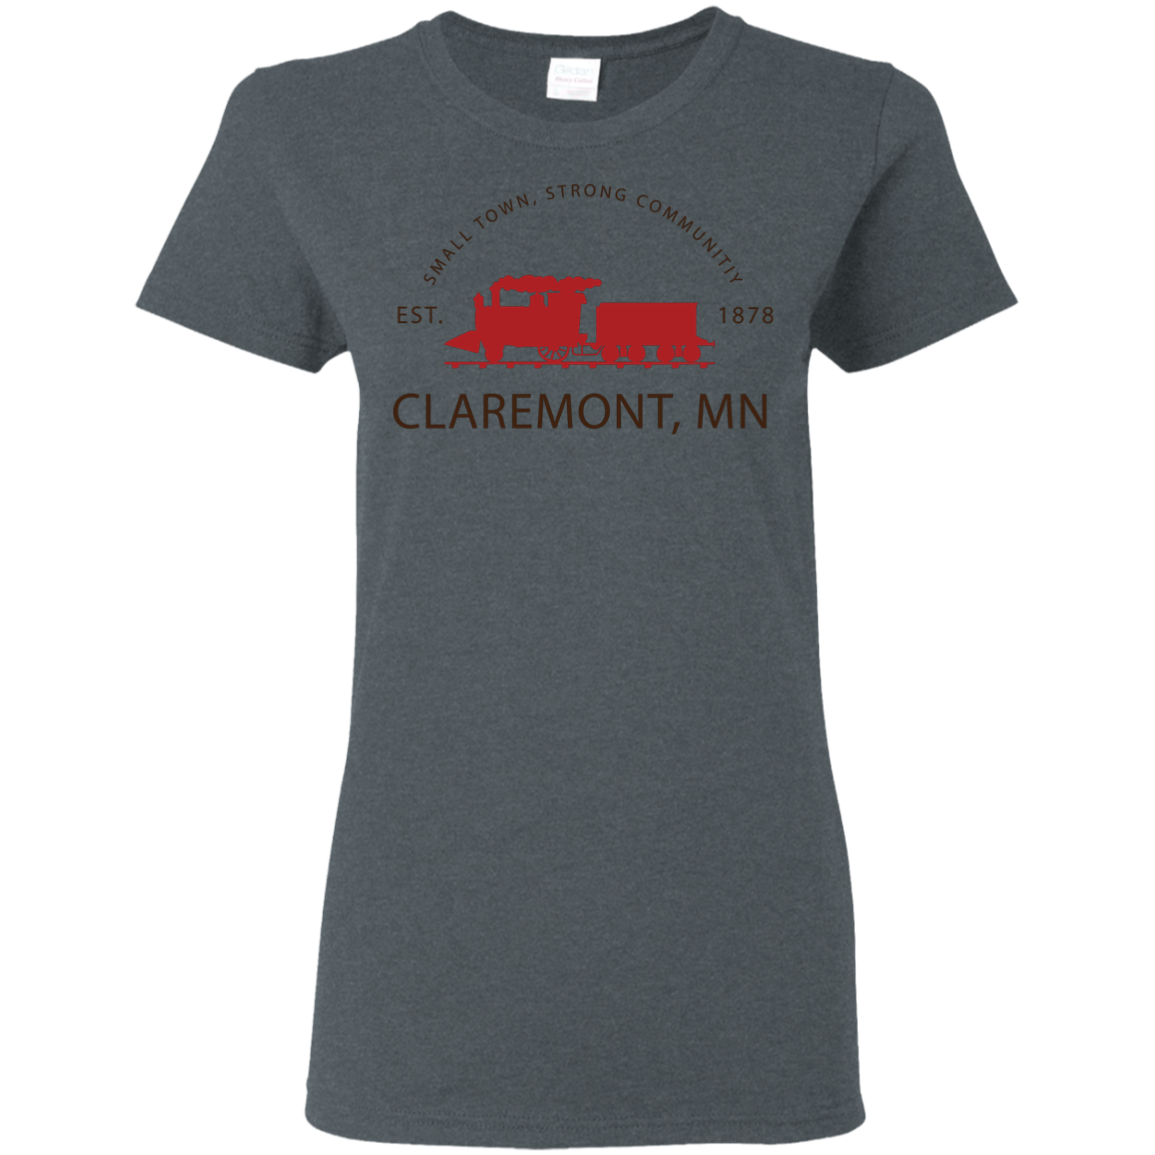 Ladies Claremont MN Shirt